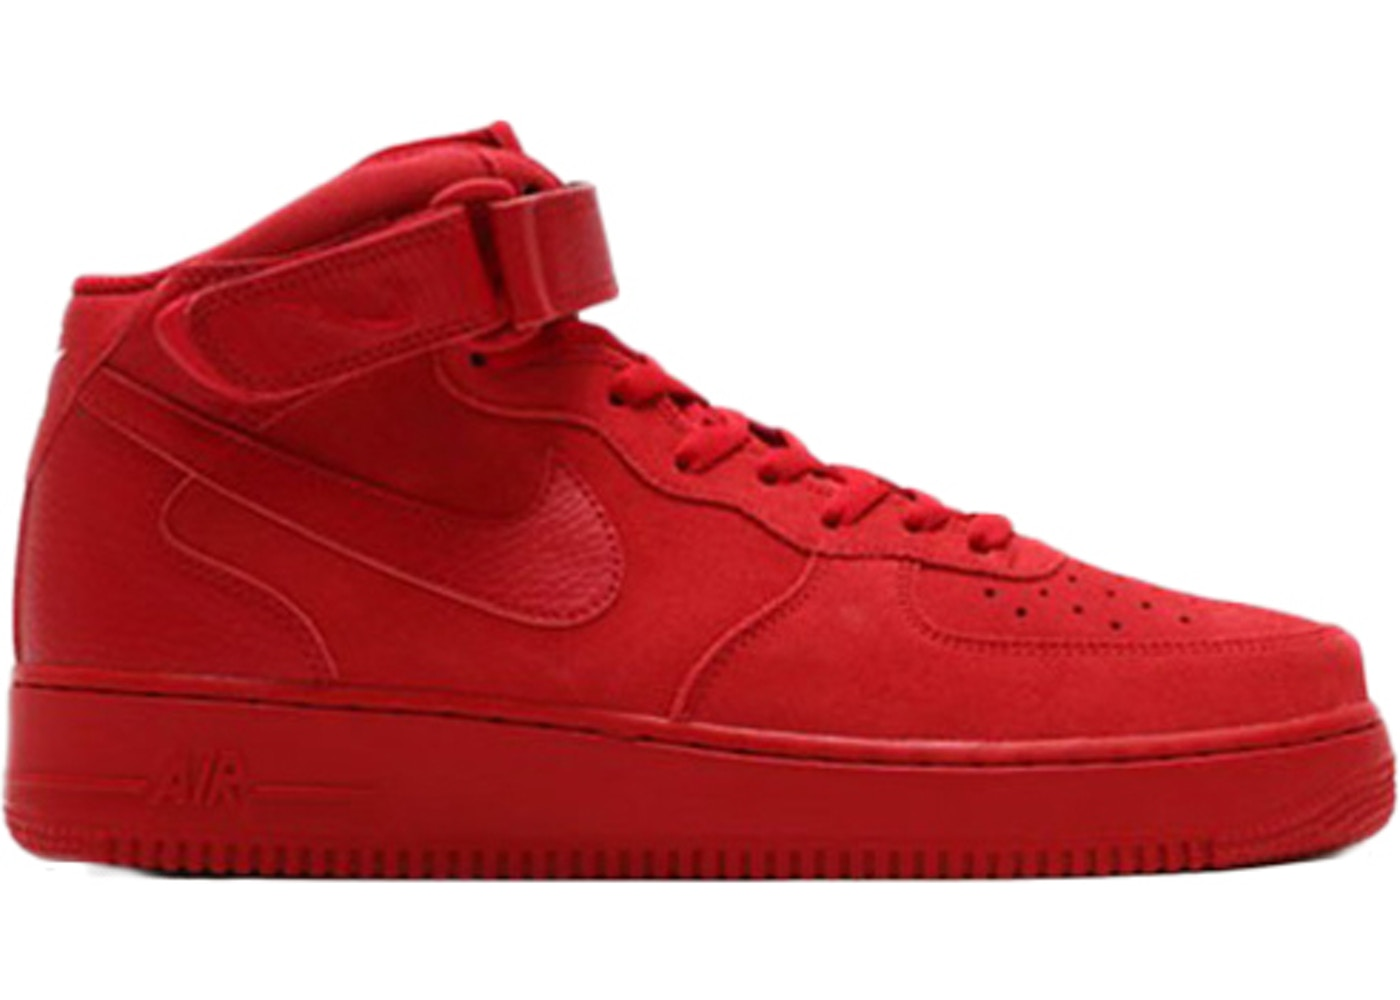 new style 07cb5 f477c Air Force 1 Mid Gym Red